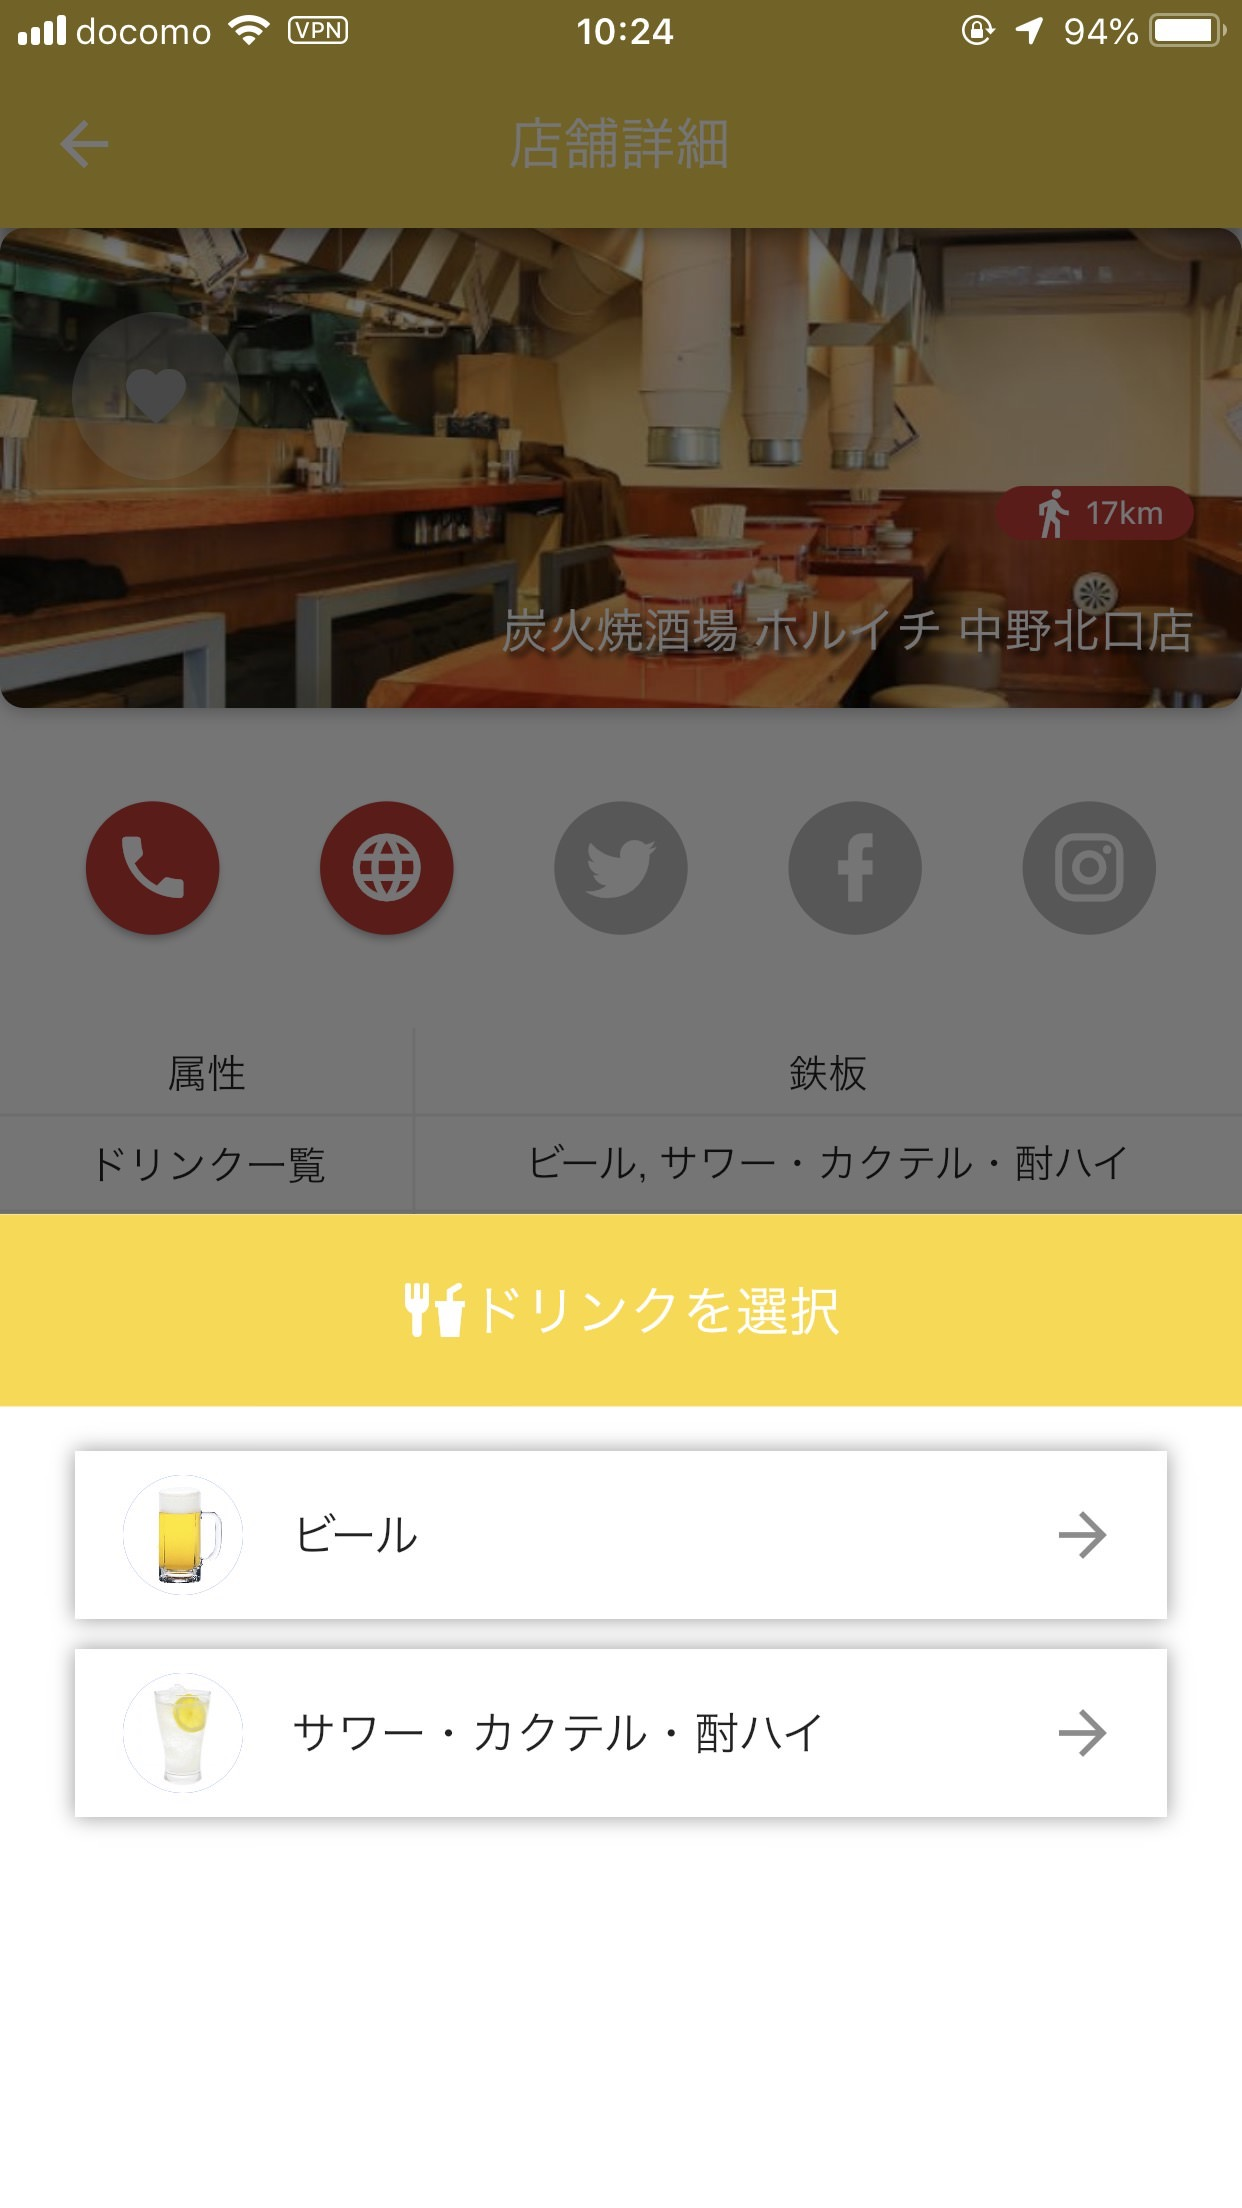 【iOS/Android】月額500円で毎日乾杯ドリンクが呑める飲食店検索アプリ「nomocca(のもっか)」 2